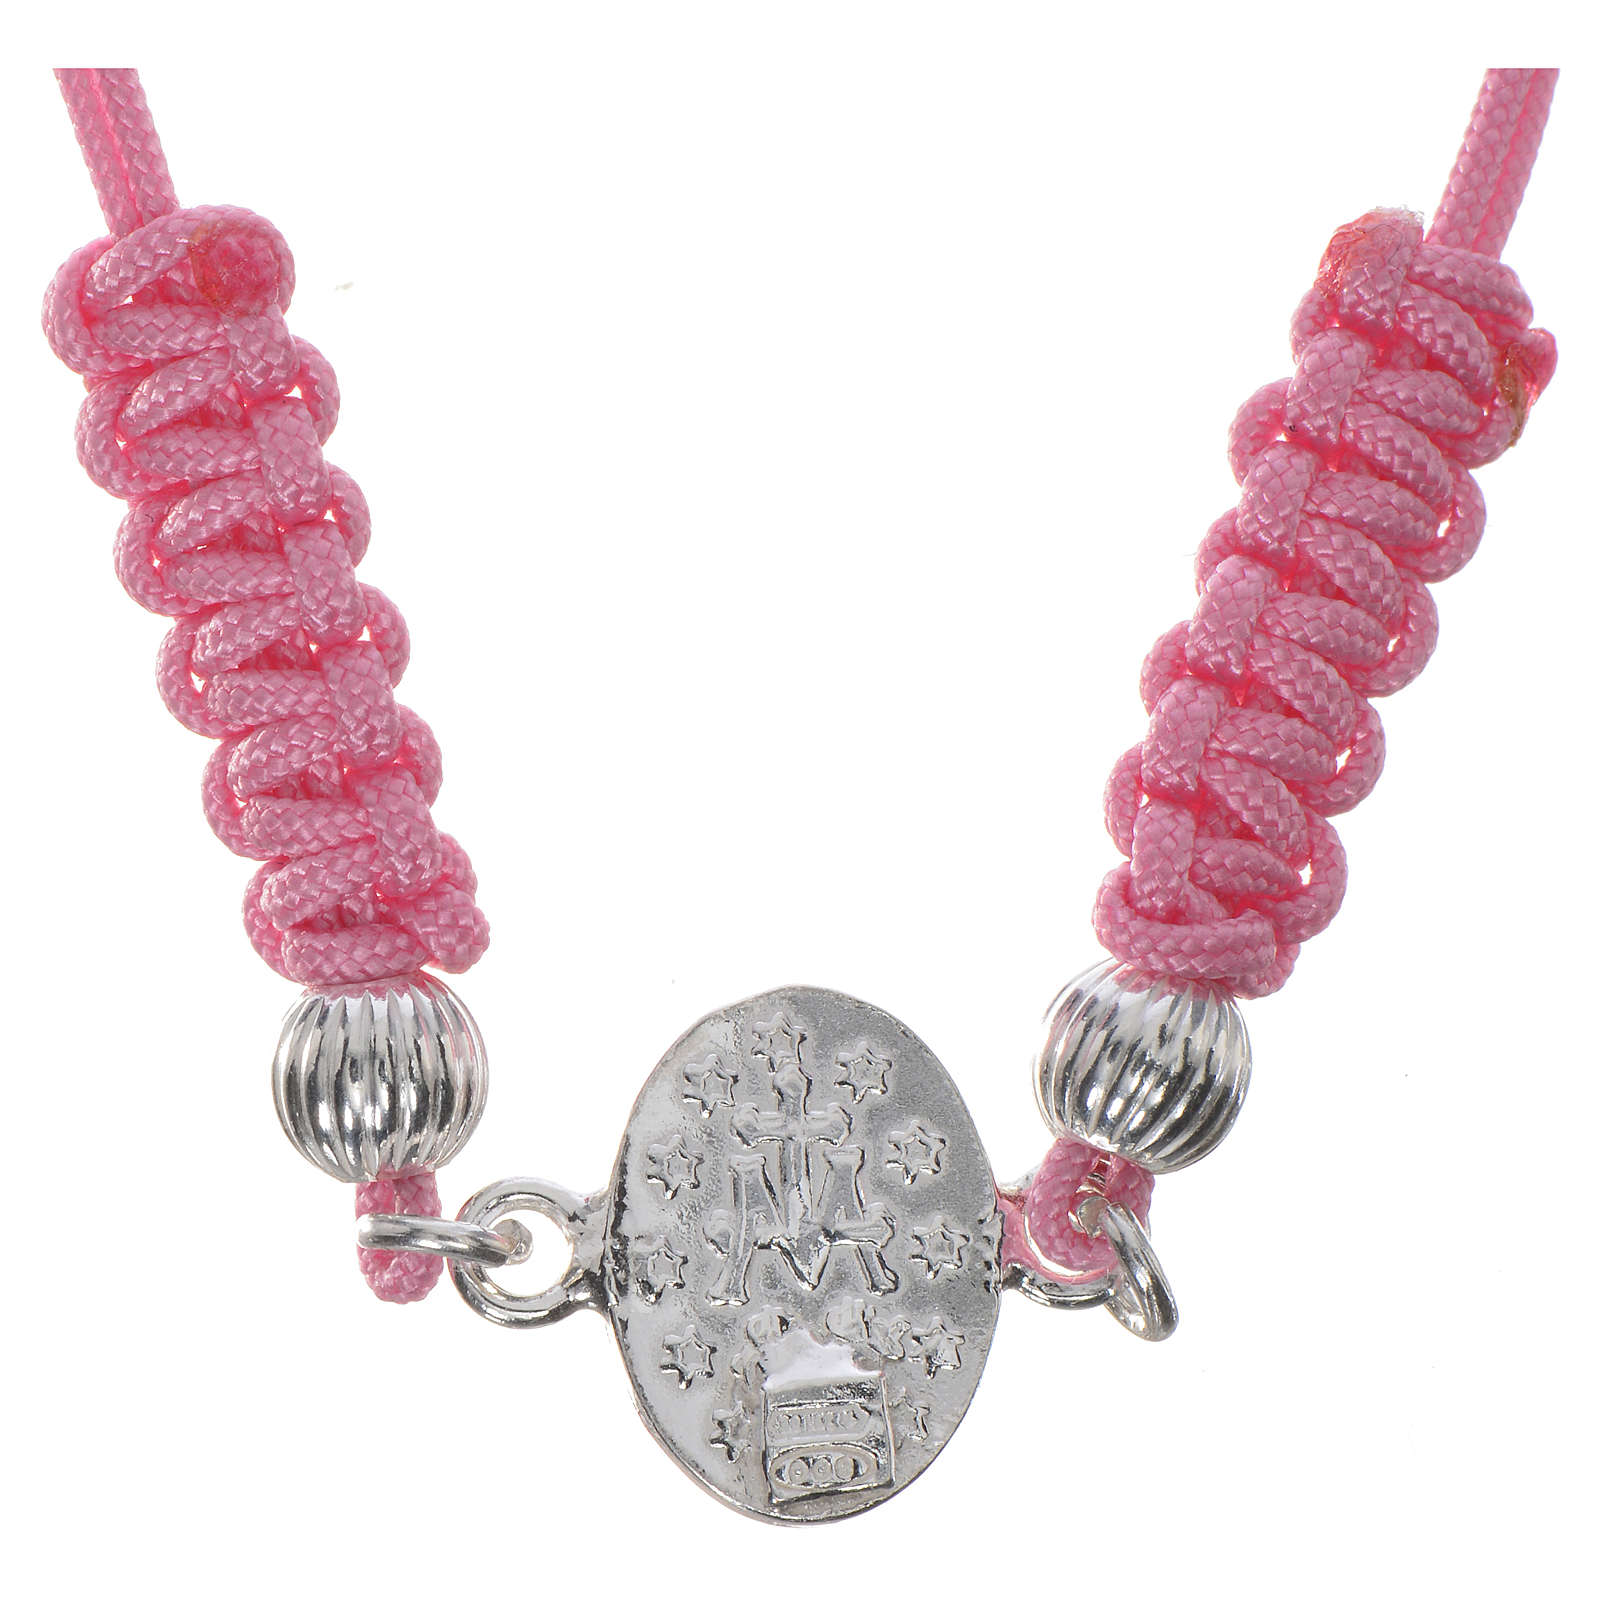 Miraculous Medal bracelet with pink cord, 925 silver 4